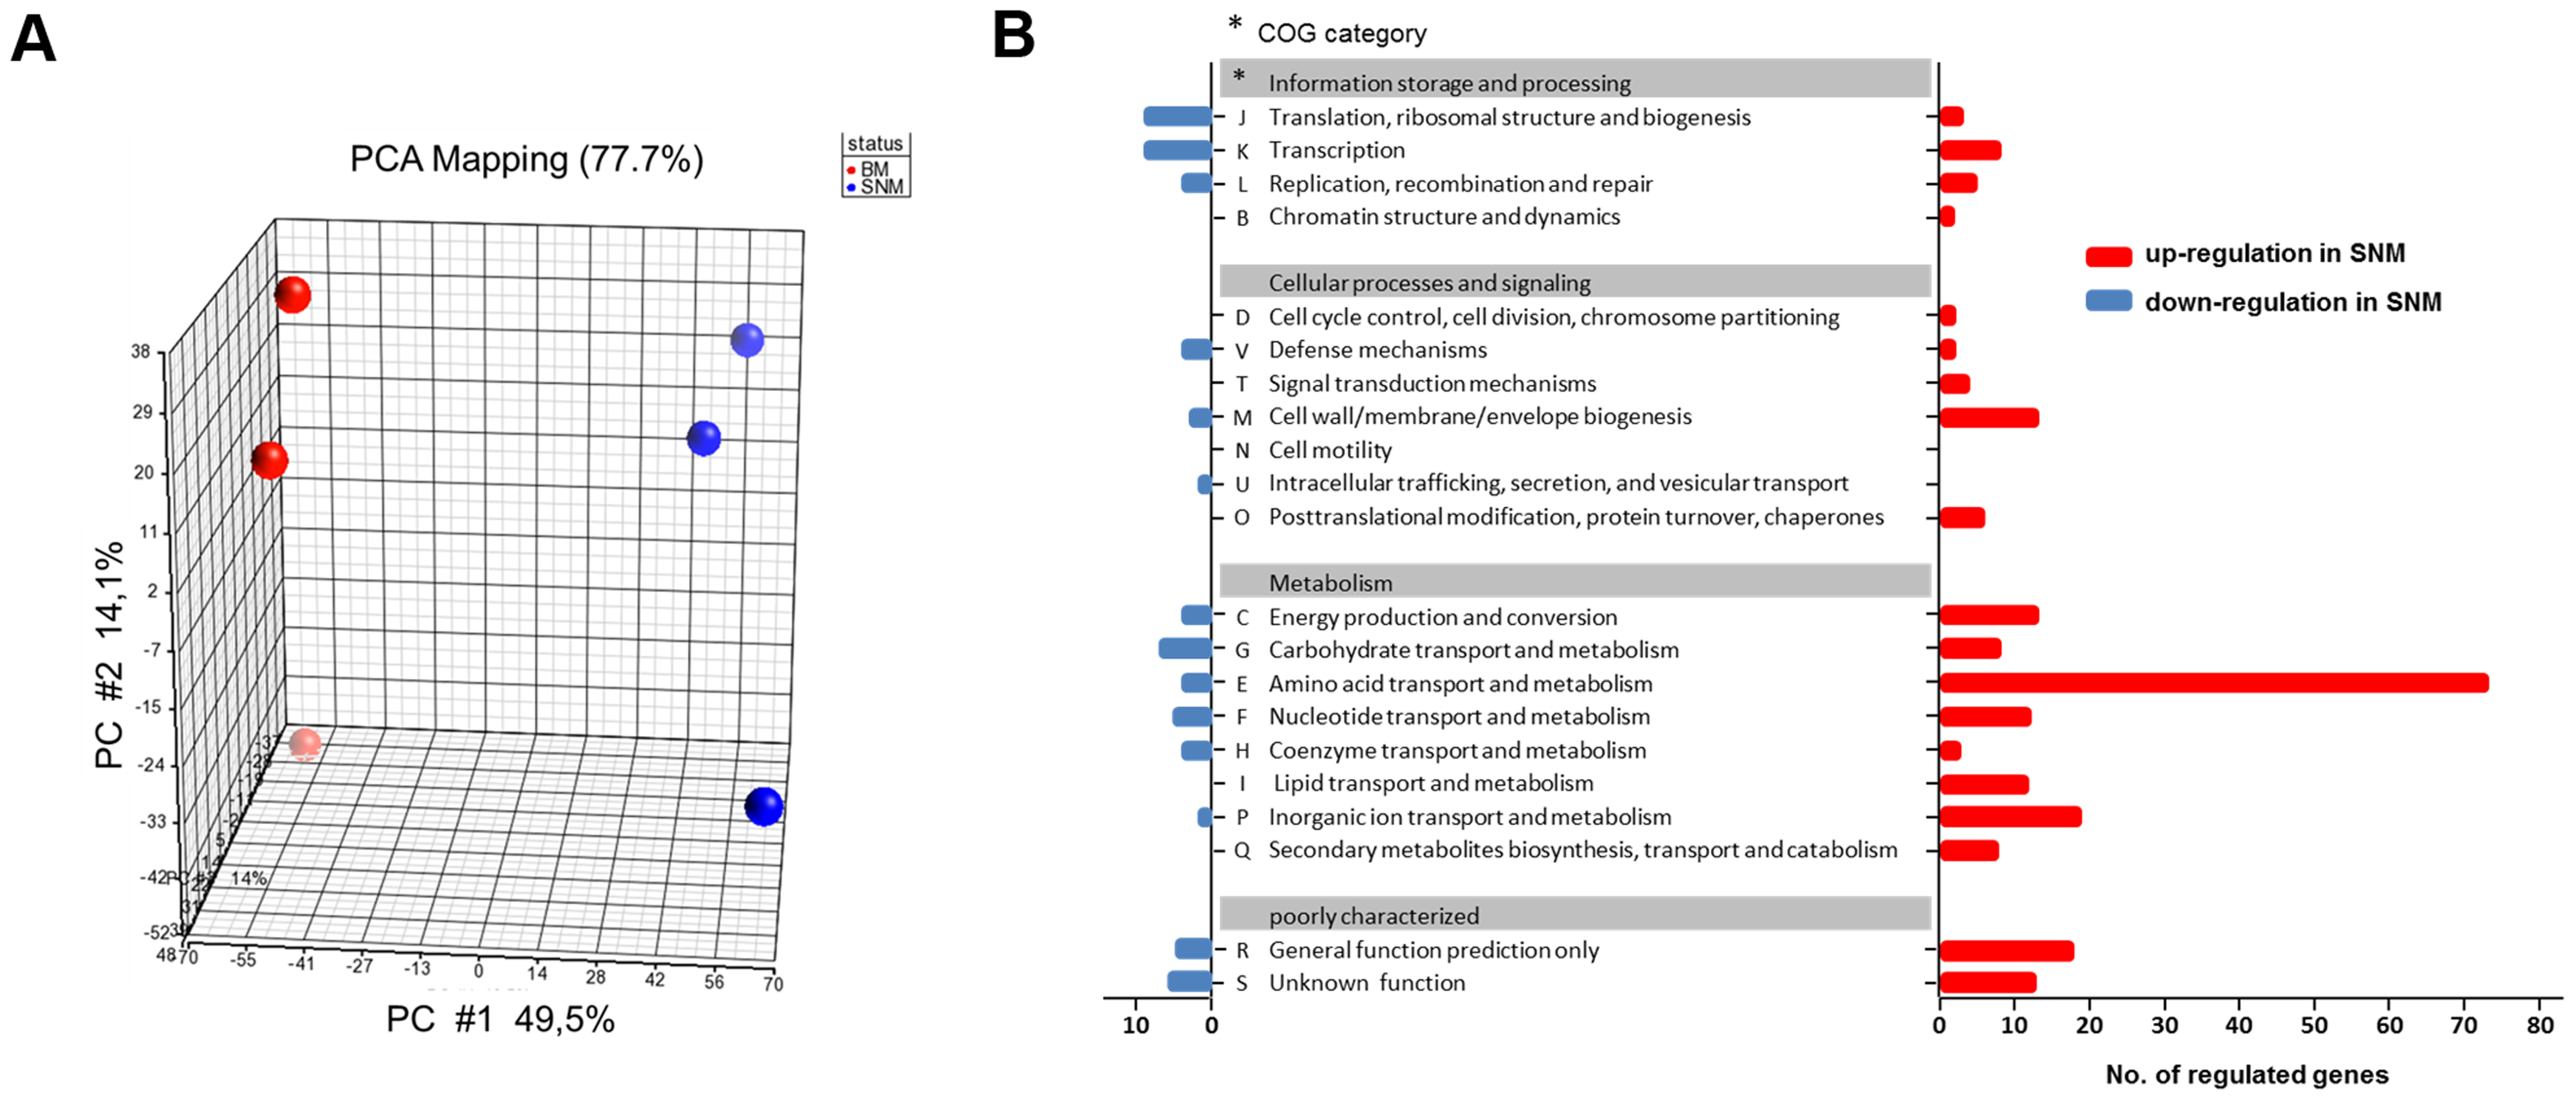 Differences in the transcriptome of <i>S. aureus</i> USA300 grown in SNM3 and complex medium (BM).